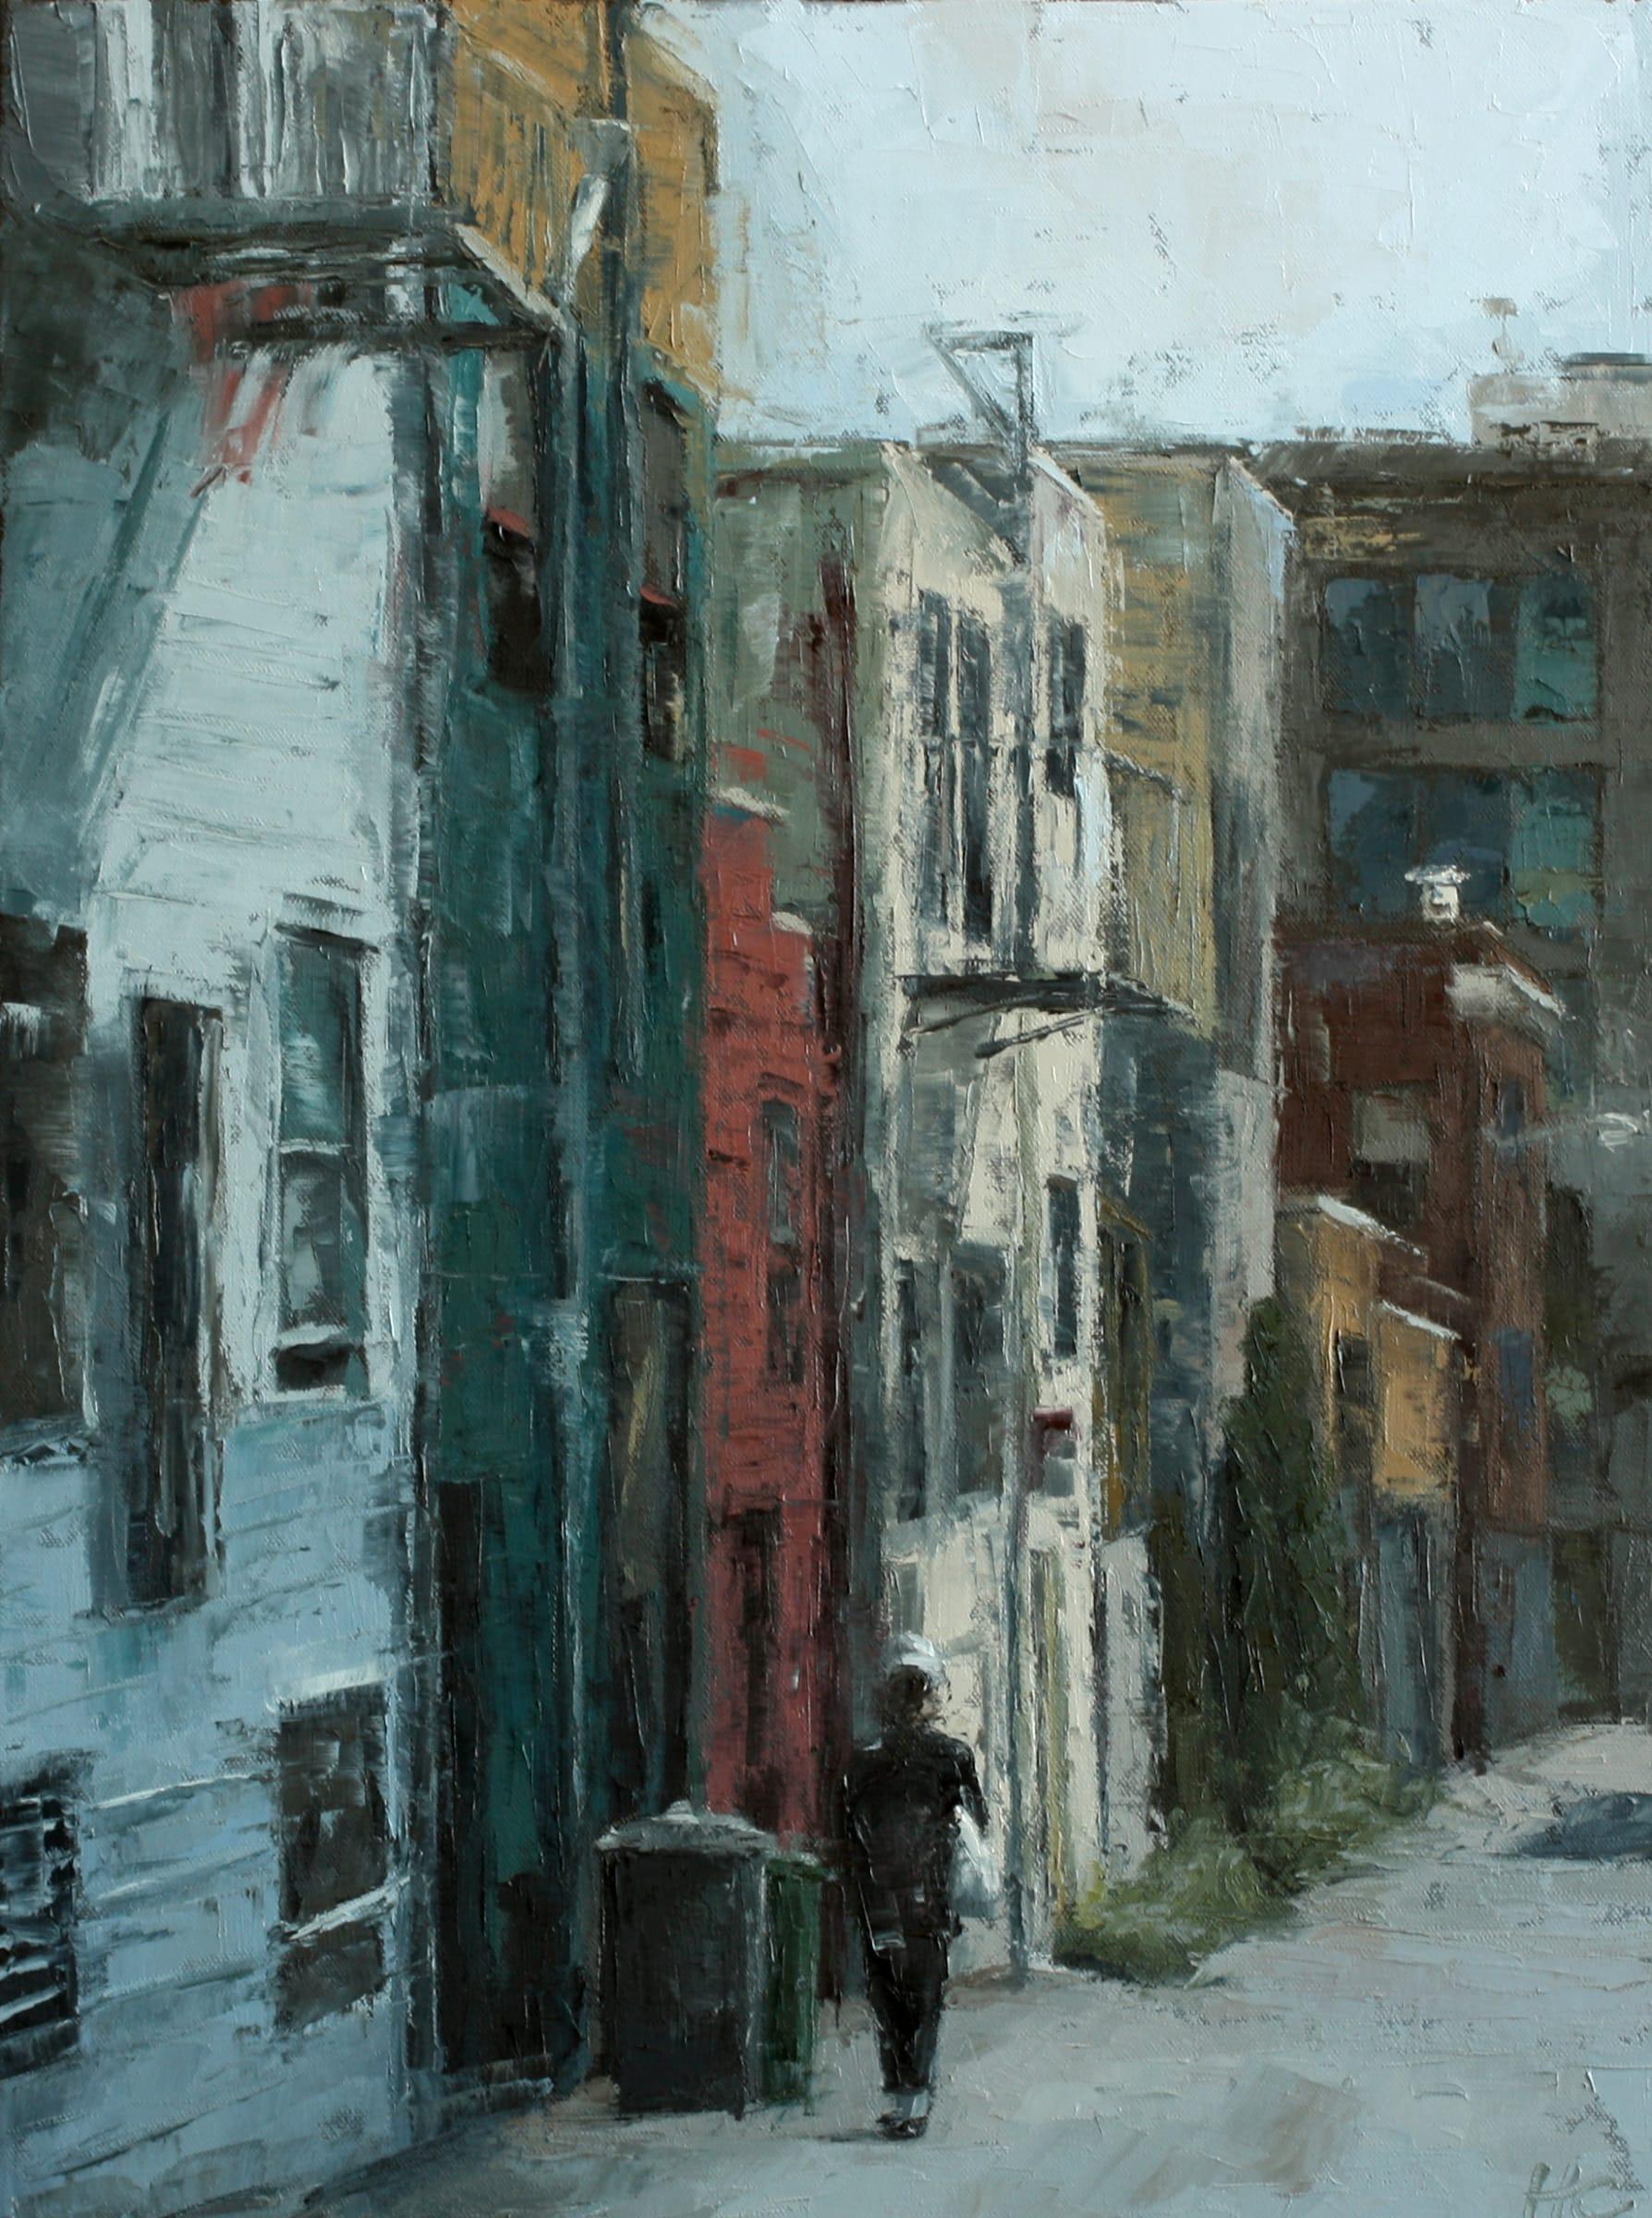 """<span class=""""link fancybox-details-link""""><a href=""""/artists/34-heather-capen/works/162-heather-capen-taber-alley/"""">View Detail Page</a></span><div class=""""artist""""><strong>Heather Capen</strong></div> <div class=""""title""""><em>Taber Alley</em></div> <div class=""""medium"""">Oil on Canvas</div> <div class=""""dimensions"""">24 x 18 inches</div>"""